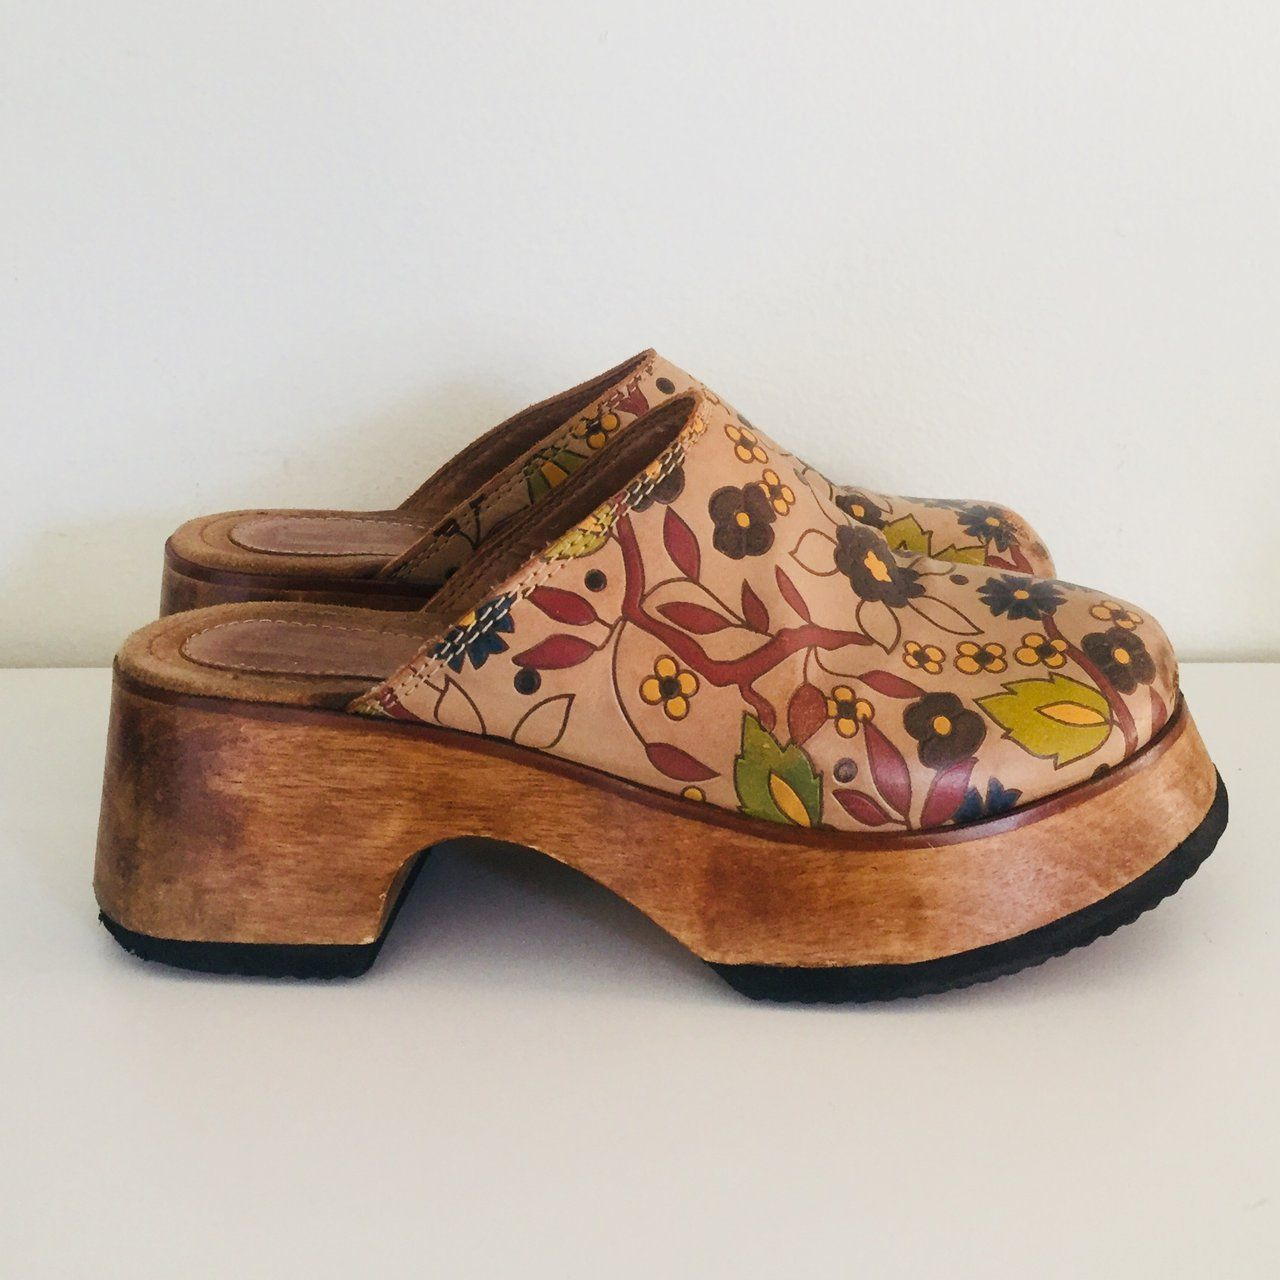 7477ec9556f Vintage Chunky Wood Clogs Platform Wedge Leather Made in Brazil Size 8 38  39 Super cute 90s chunky platform wood clogs with a floral painted leather  upper ...